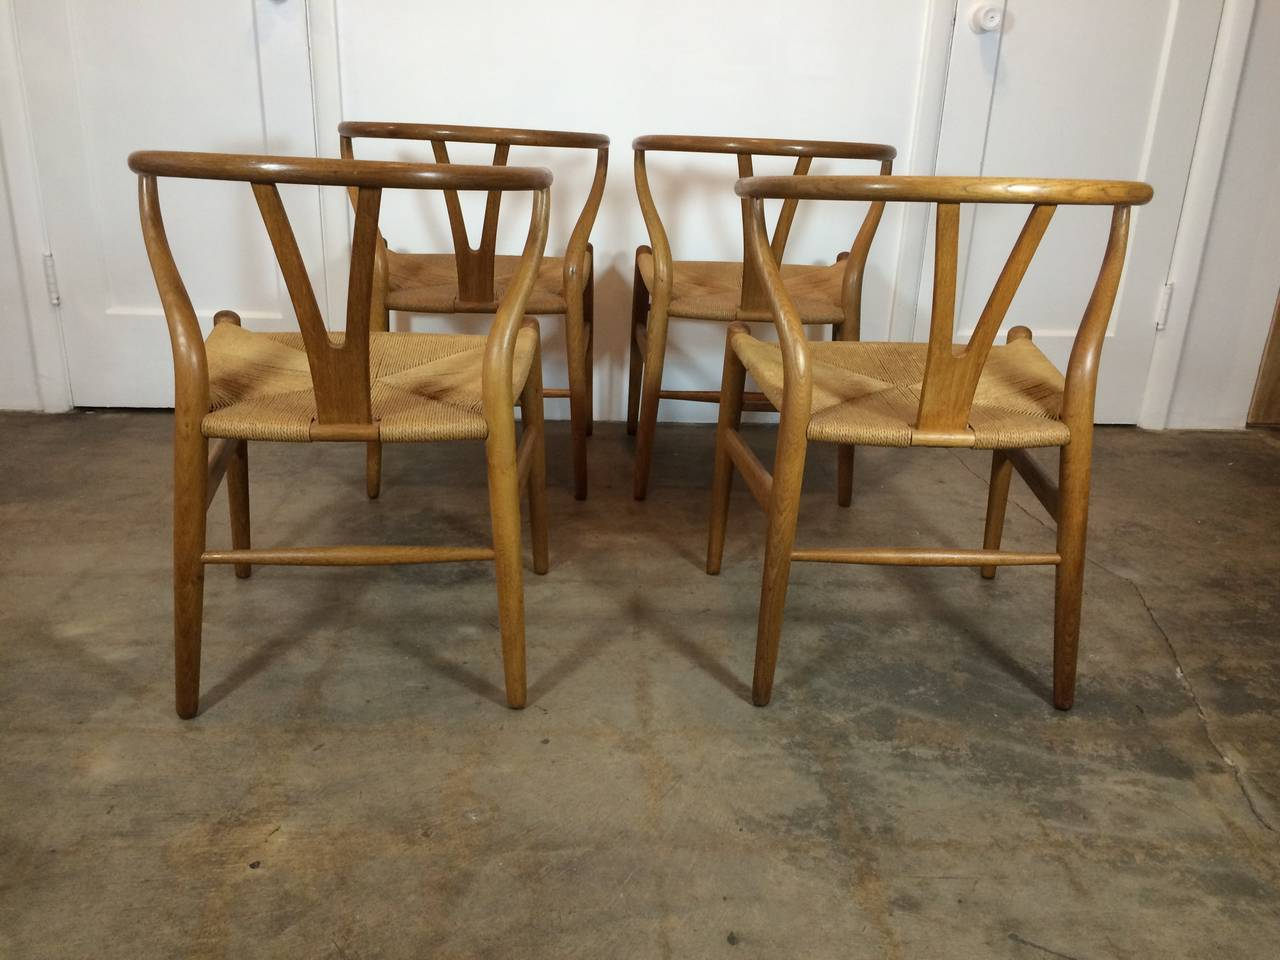 Early production wishbone chairs in original finish. Shipping tags to US included. Oak and paper cord construction, perfect for a dining room set.